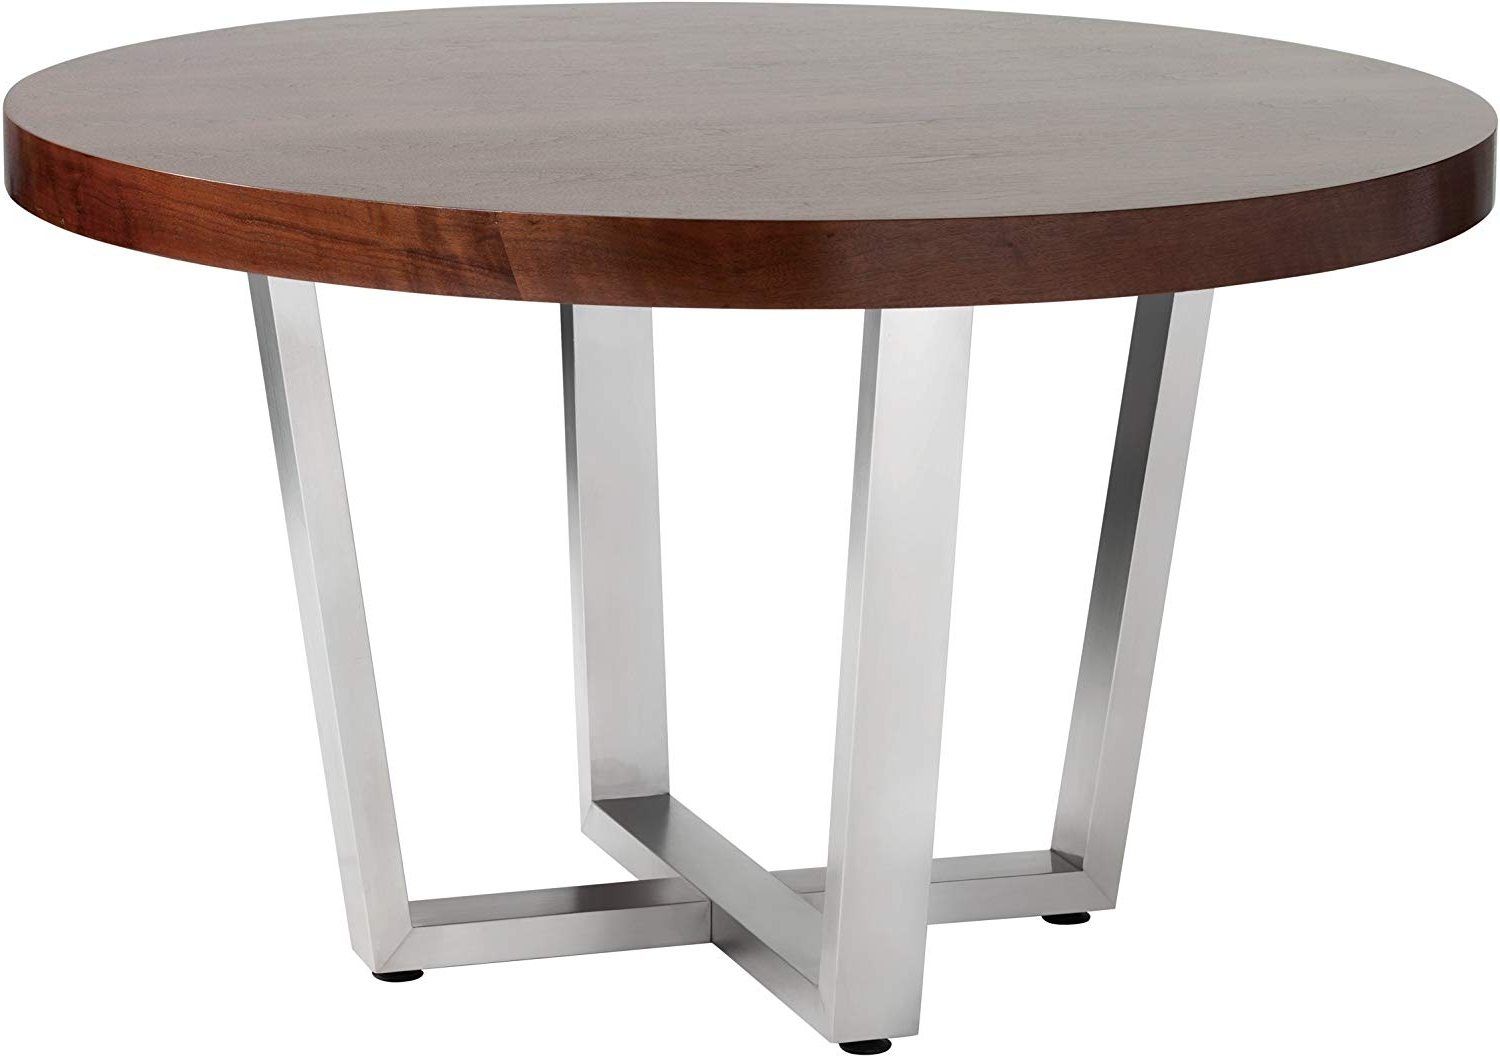 Trendy Sunpan Ikon Dining Tables, Brown With Regard To Transitional 4 Seating Double Drop Leaf Casual Dining Tables (View 8 of 25)